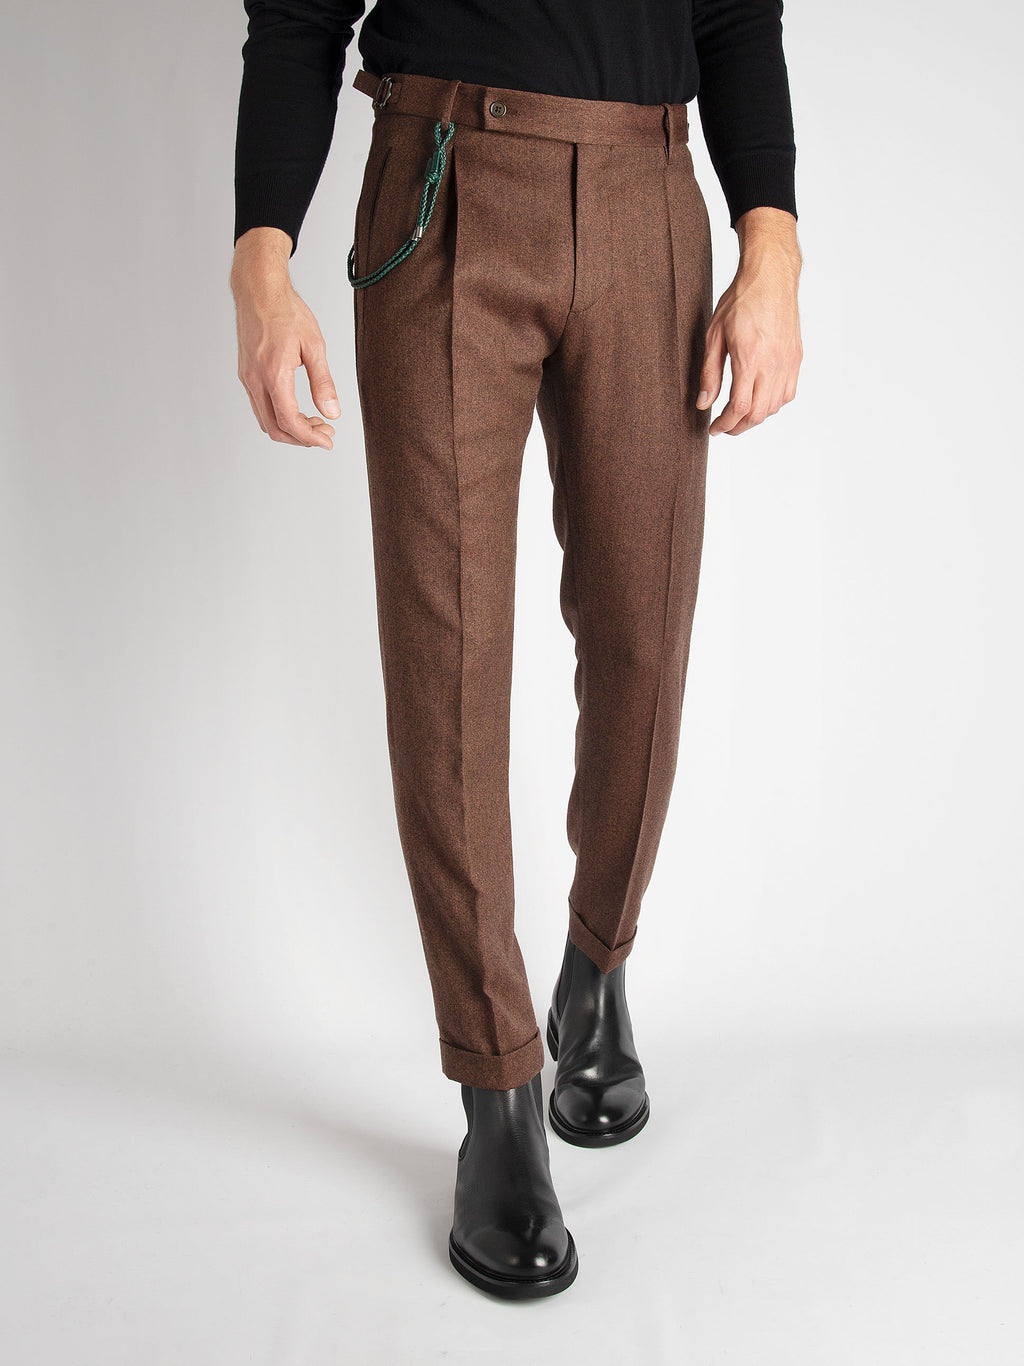 Pantalone 'Retro' - Ruggine